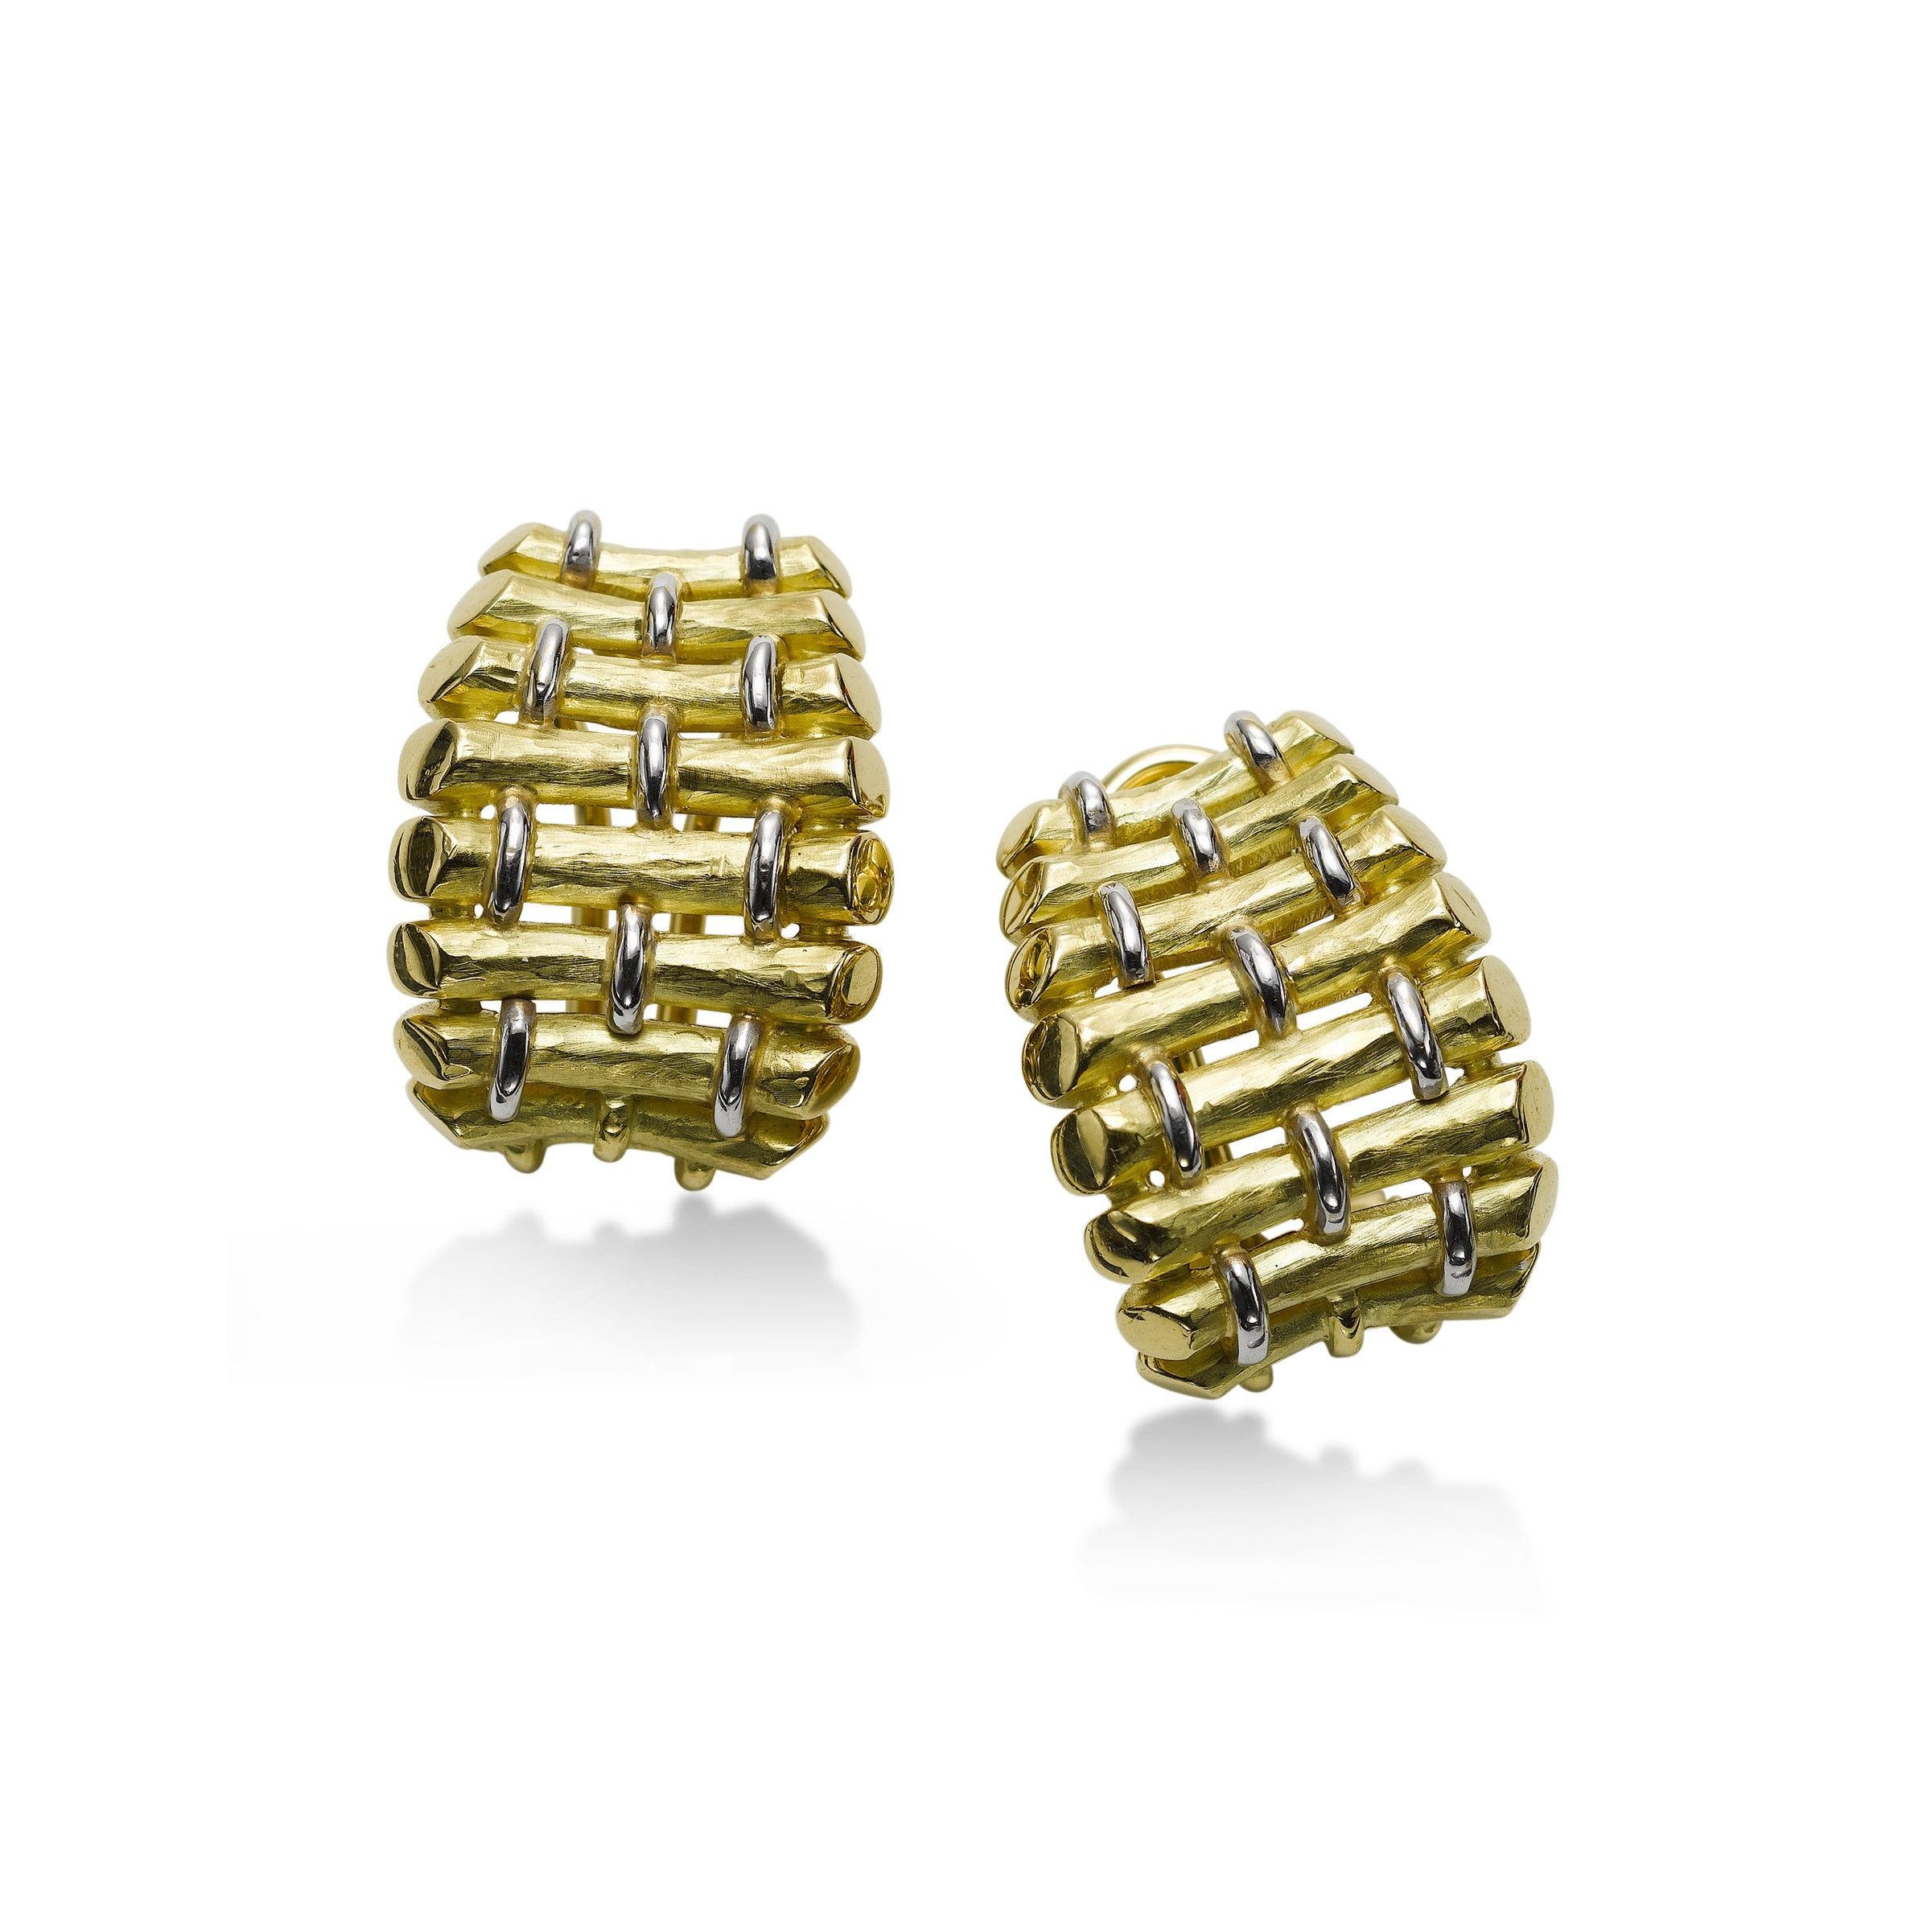 Gold earrings  in a basket weave of white and yellow gold. They're featured in my latest blog, which is a love letter to Italian jewelry and the amazing January jewelry show in the beautiful northern Italian city of Vicenza. I was lucky to go recently.